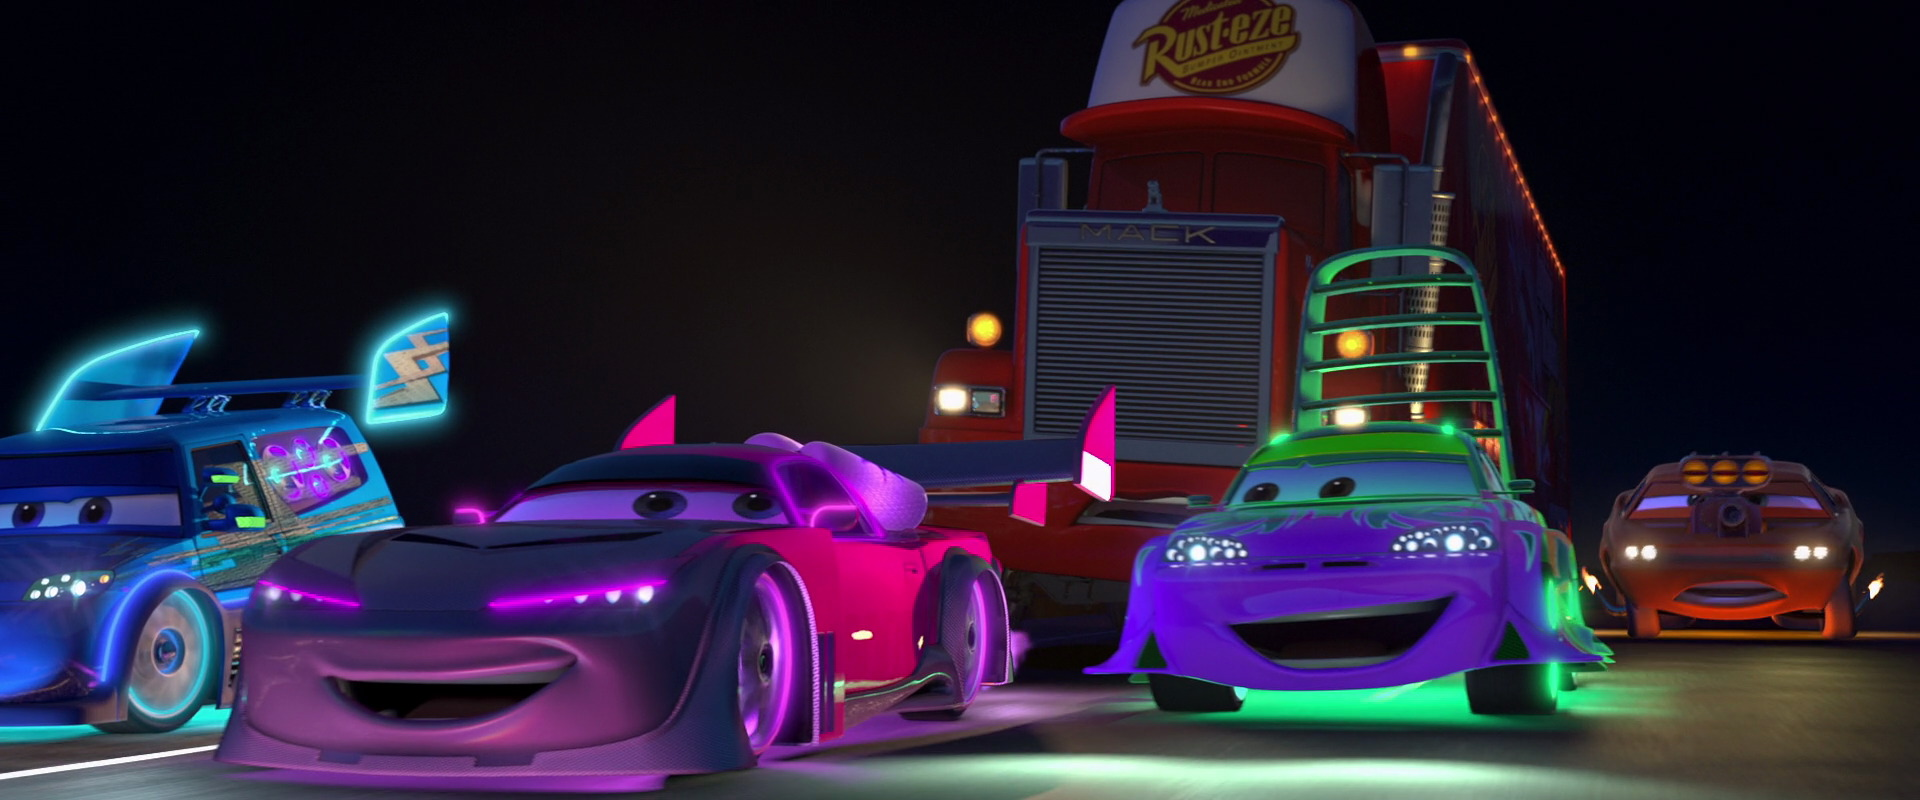 booster-personnage-cars-02